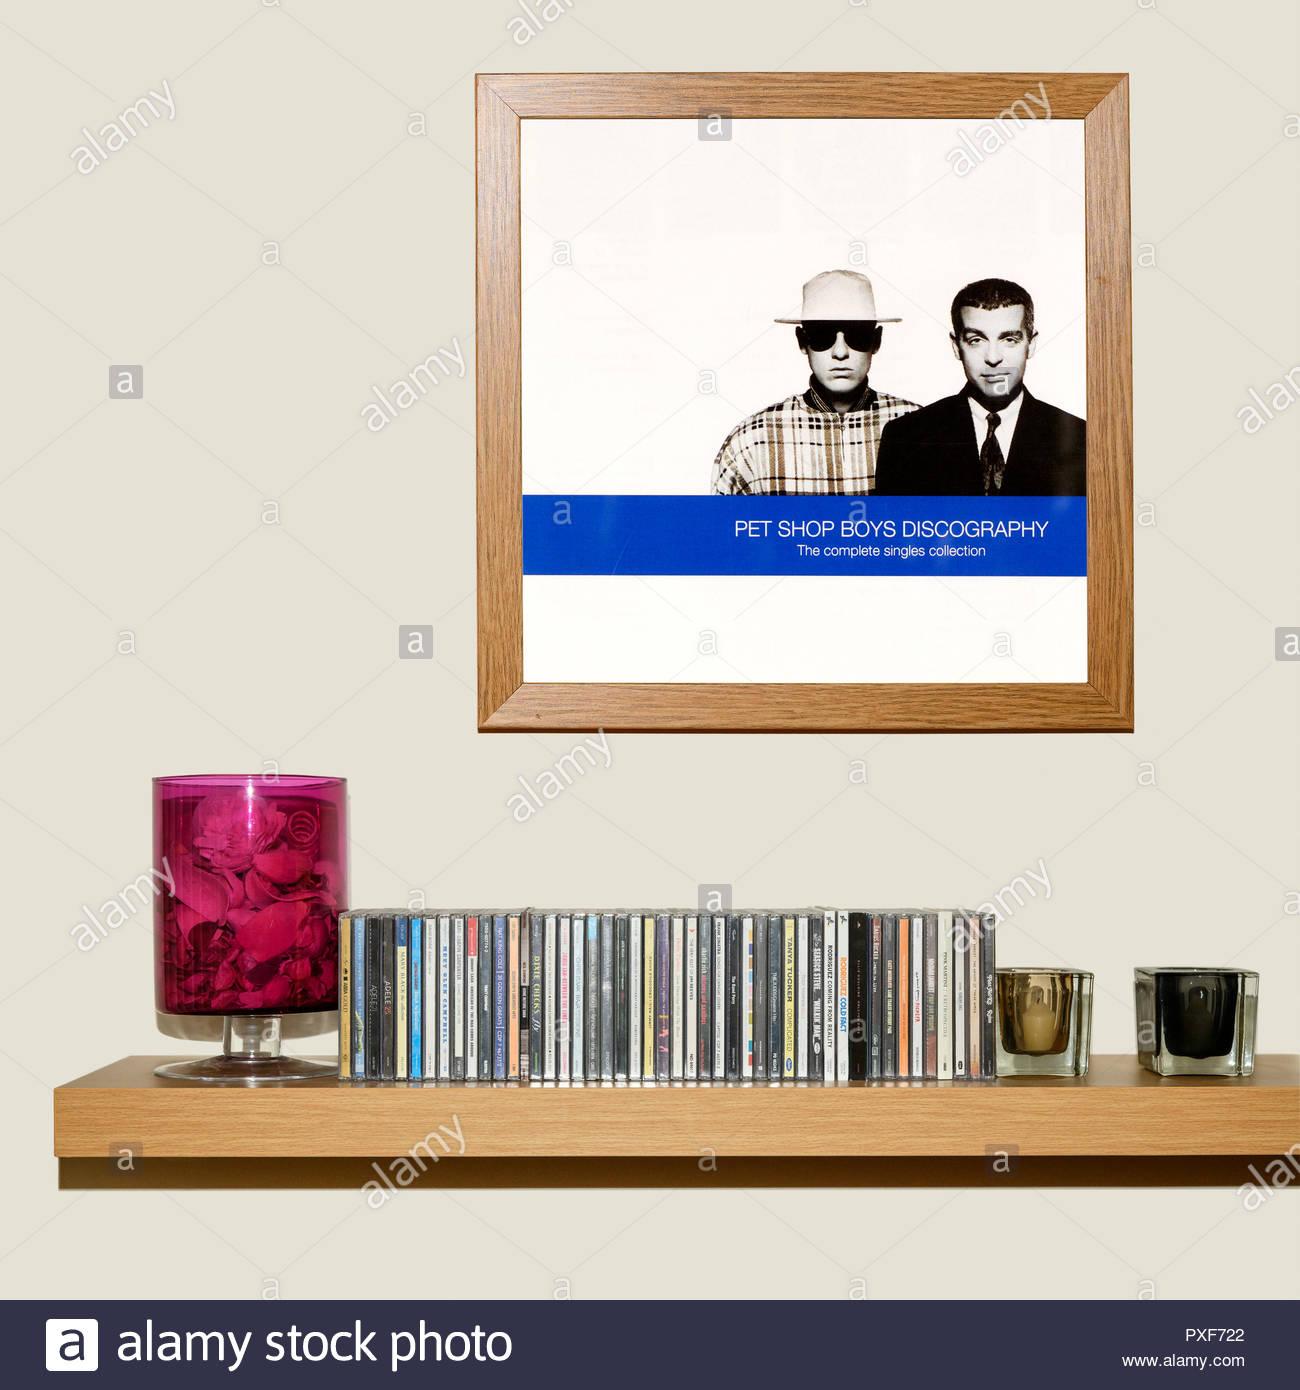 CD Collection and framed Pet Shop Boys 1991 album Discography, England - Stock Image